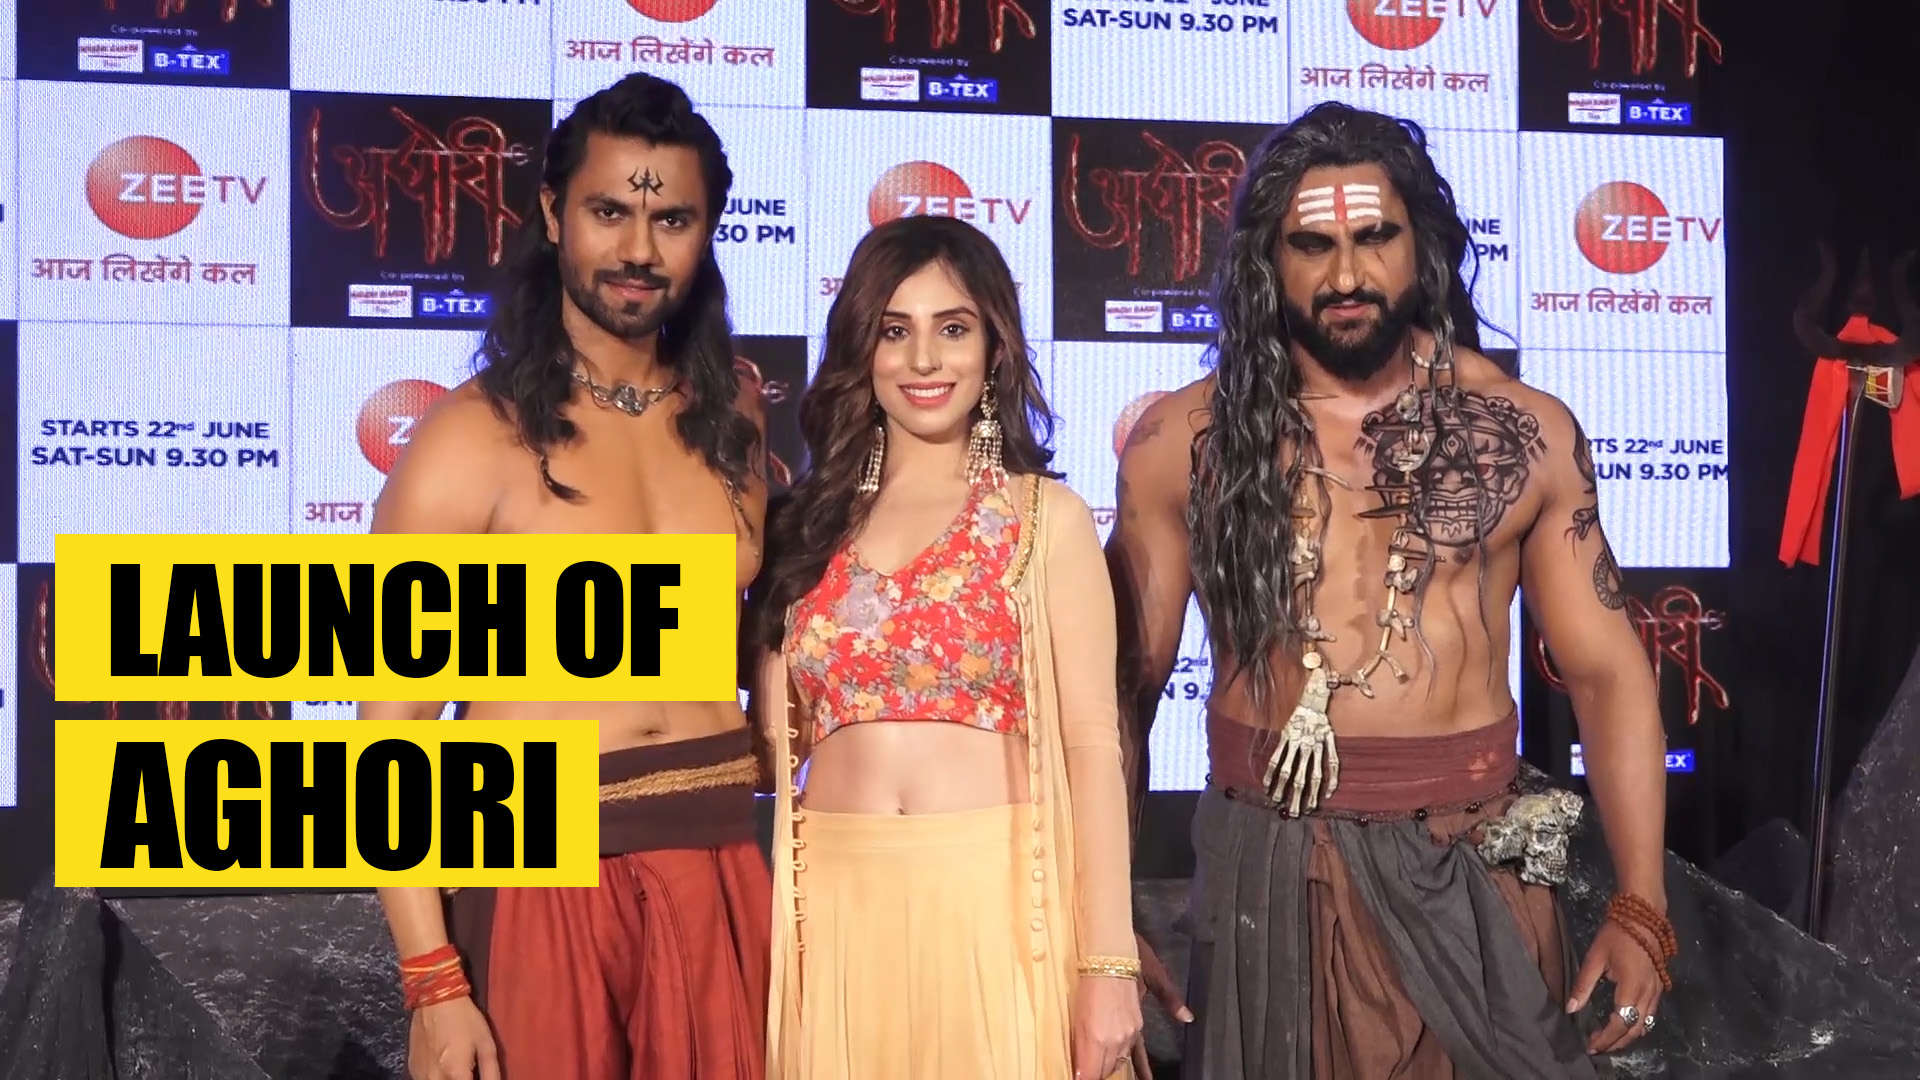 Gaurav Chopraa, Parag Tyagi and Simran Kaur at the launch of Aghori